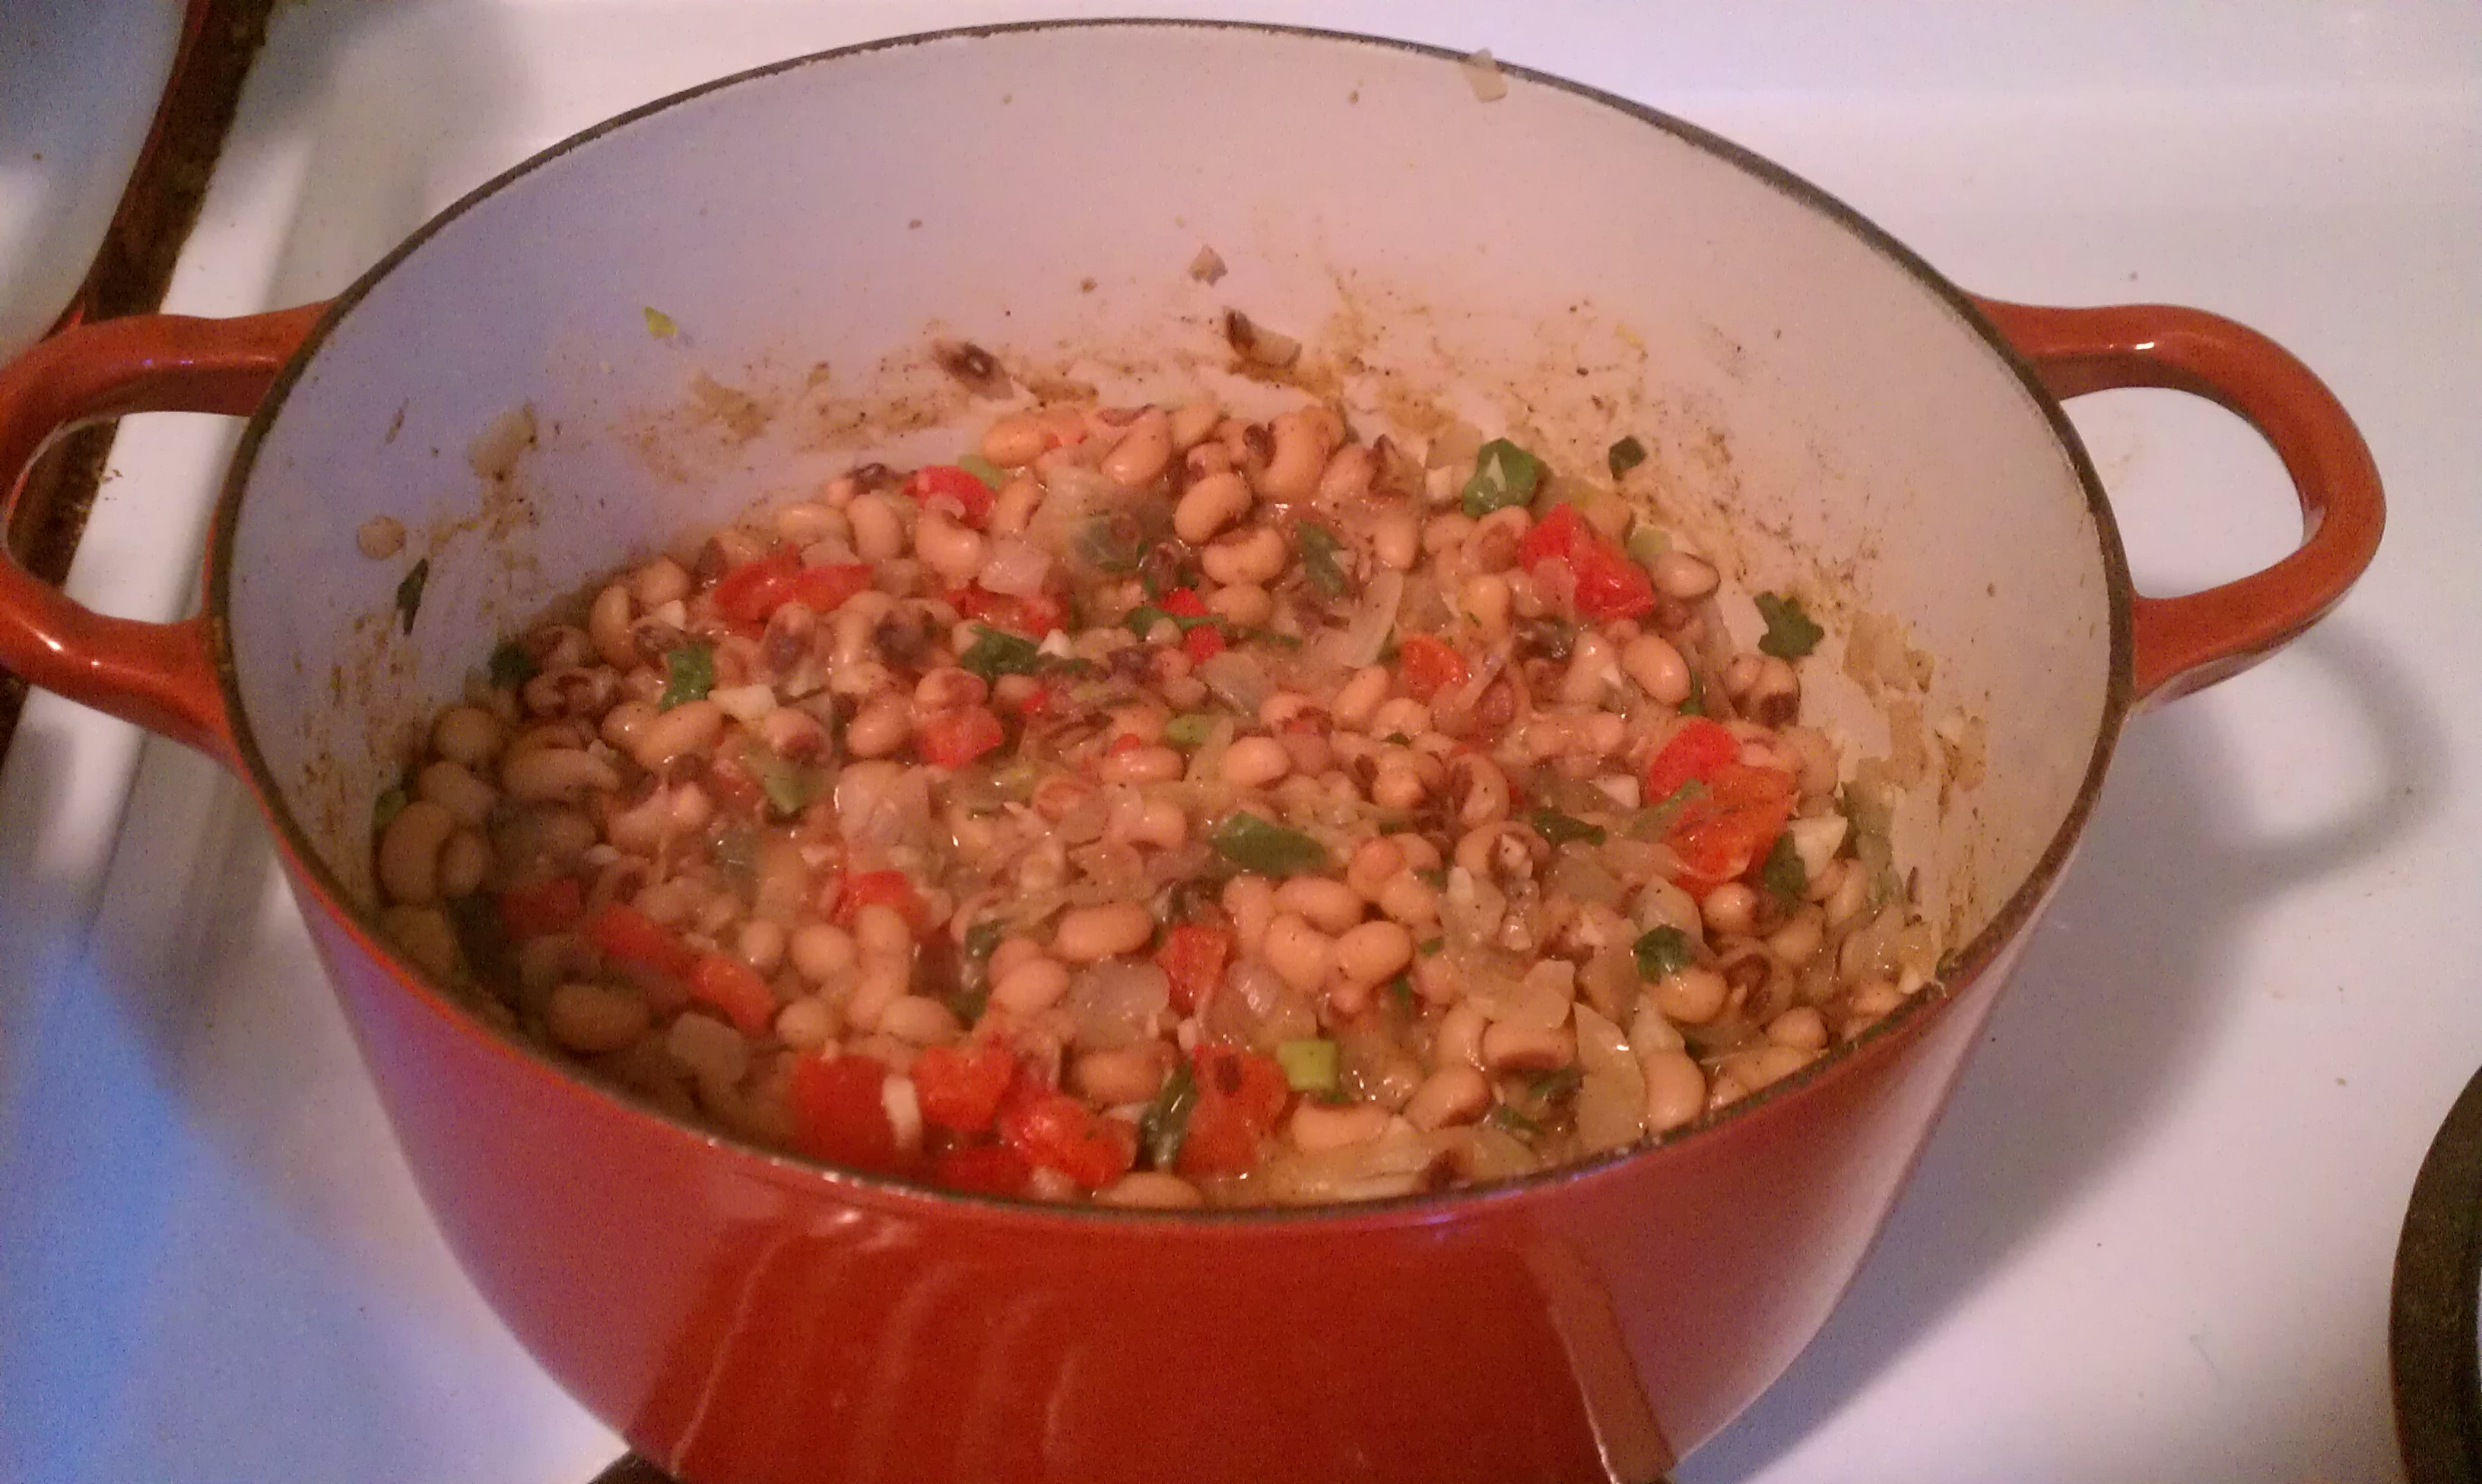 Musings from Marilyn » Making Lucky Hoppin' John